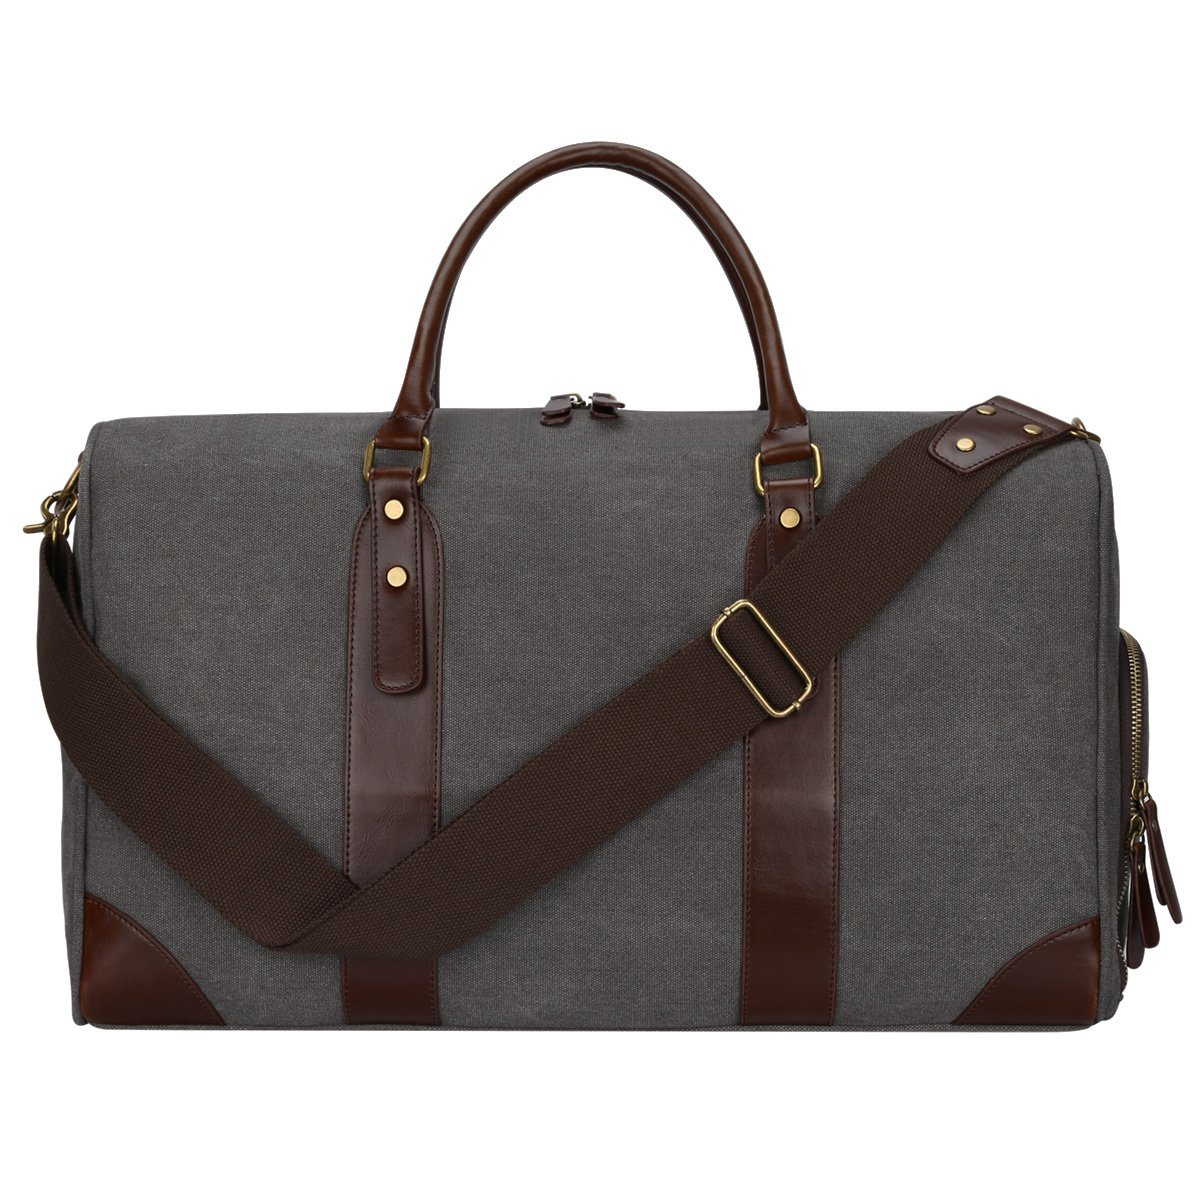 S-Zone Canvas PU Leather Trim Travel Duffel Shoulder Handbag Weekender Carry On Luggage with Shoe Pouch S-ZONE D01V029C